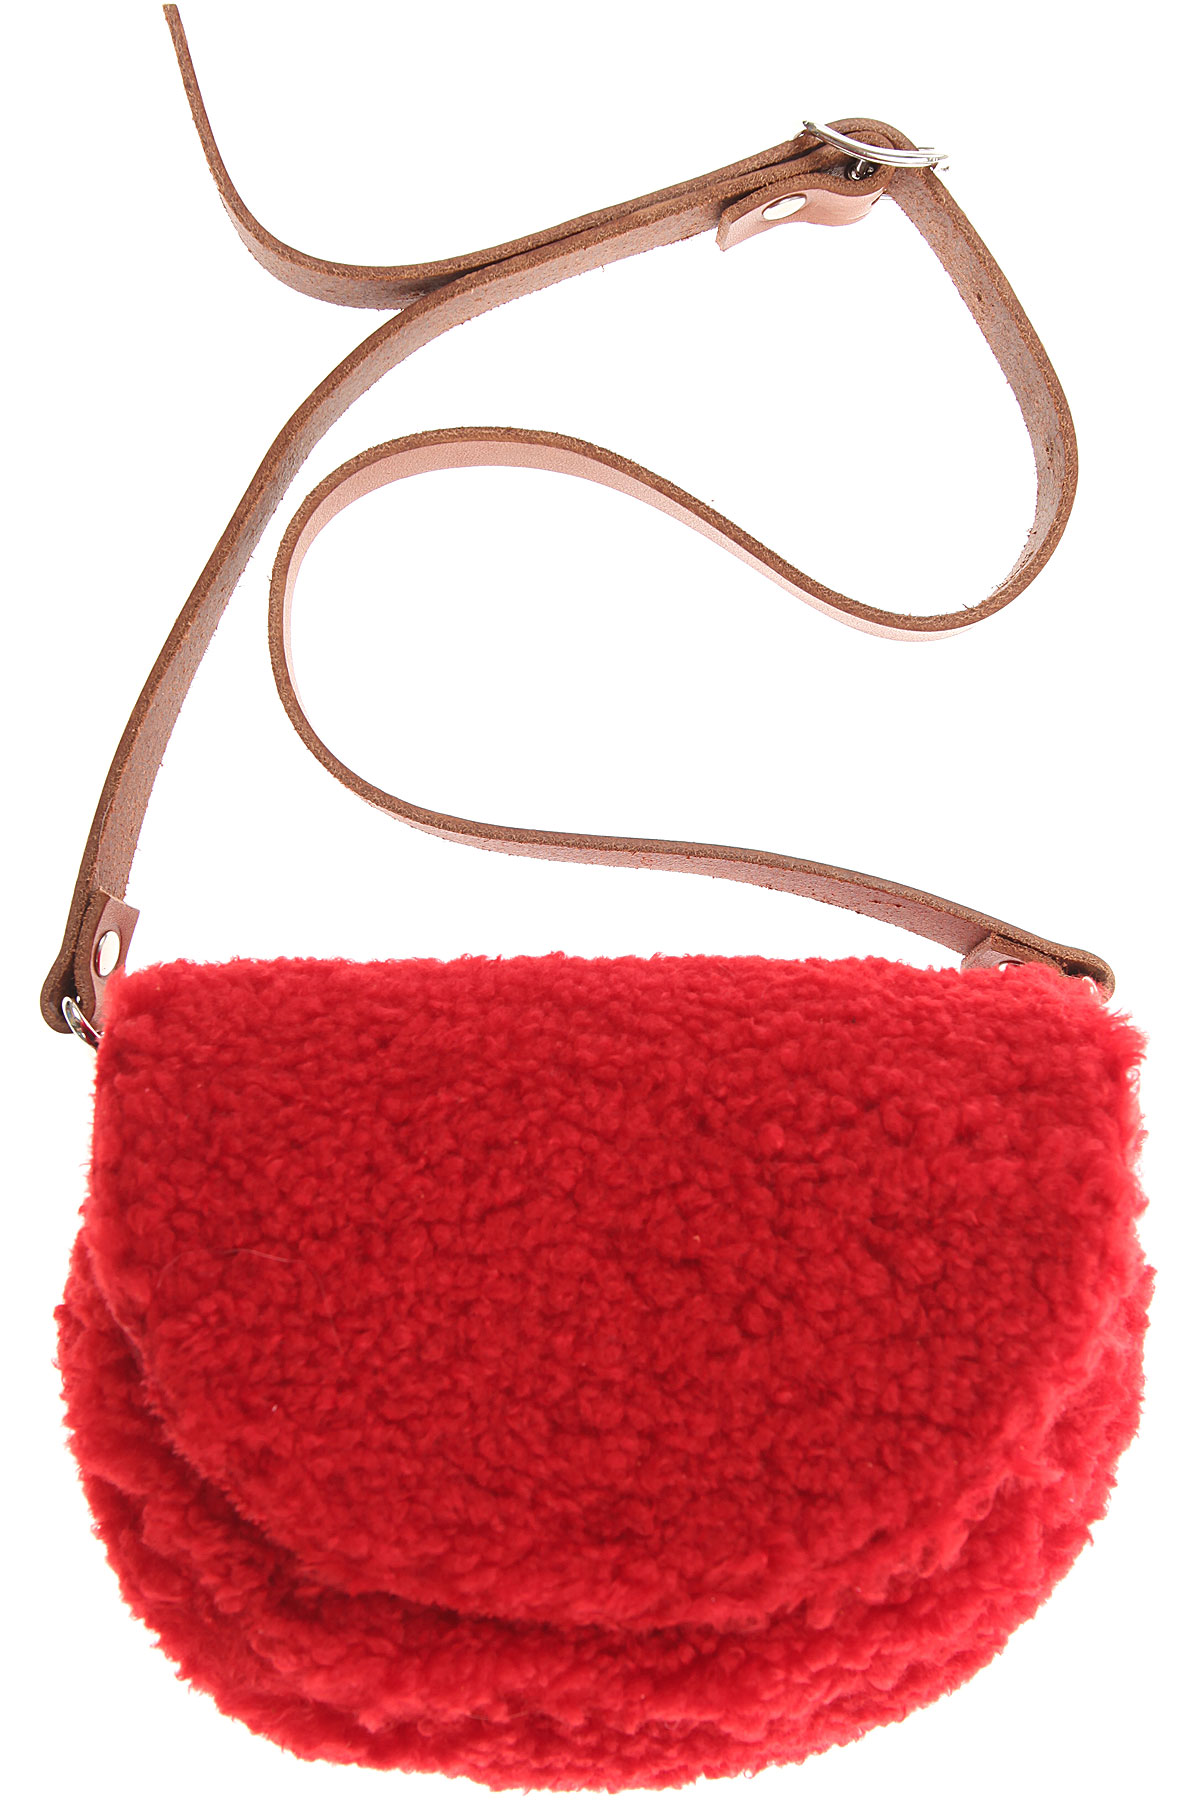 Image of Il Gufo Girls Handbag, Red, Leather, 2017